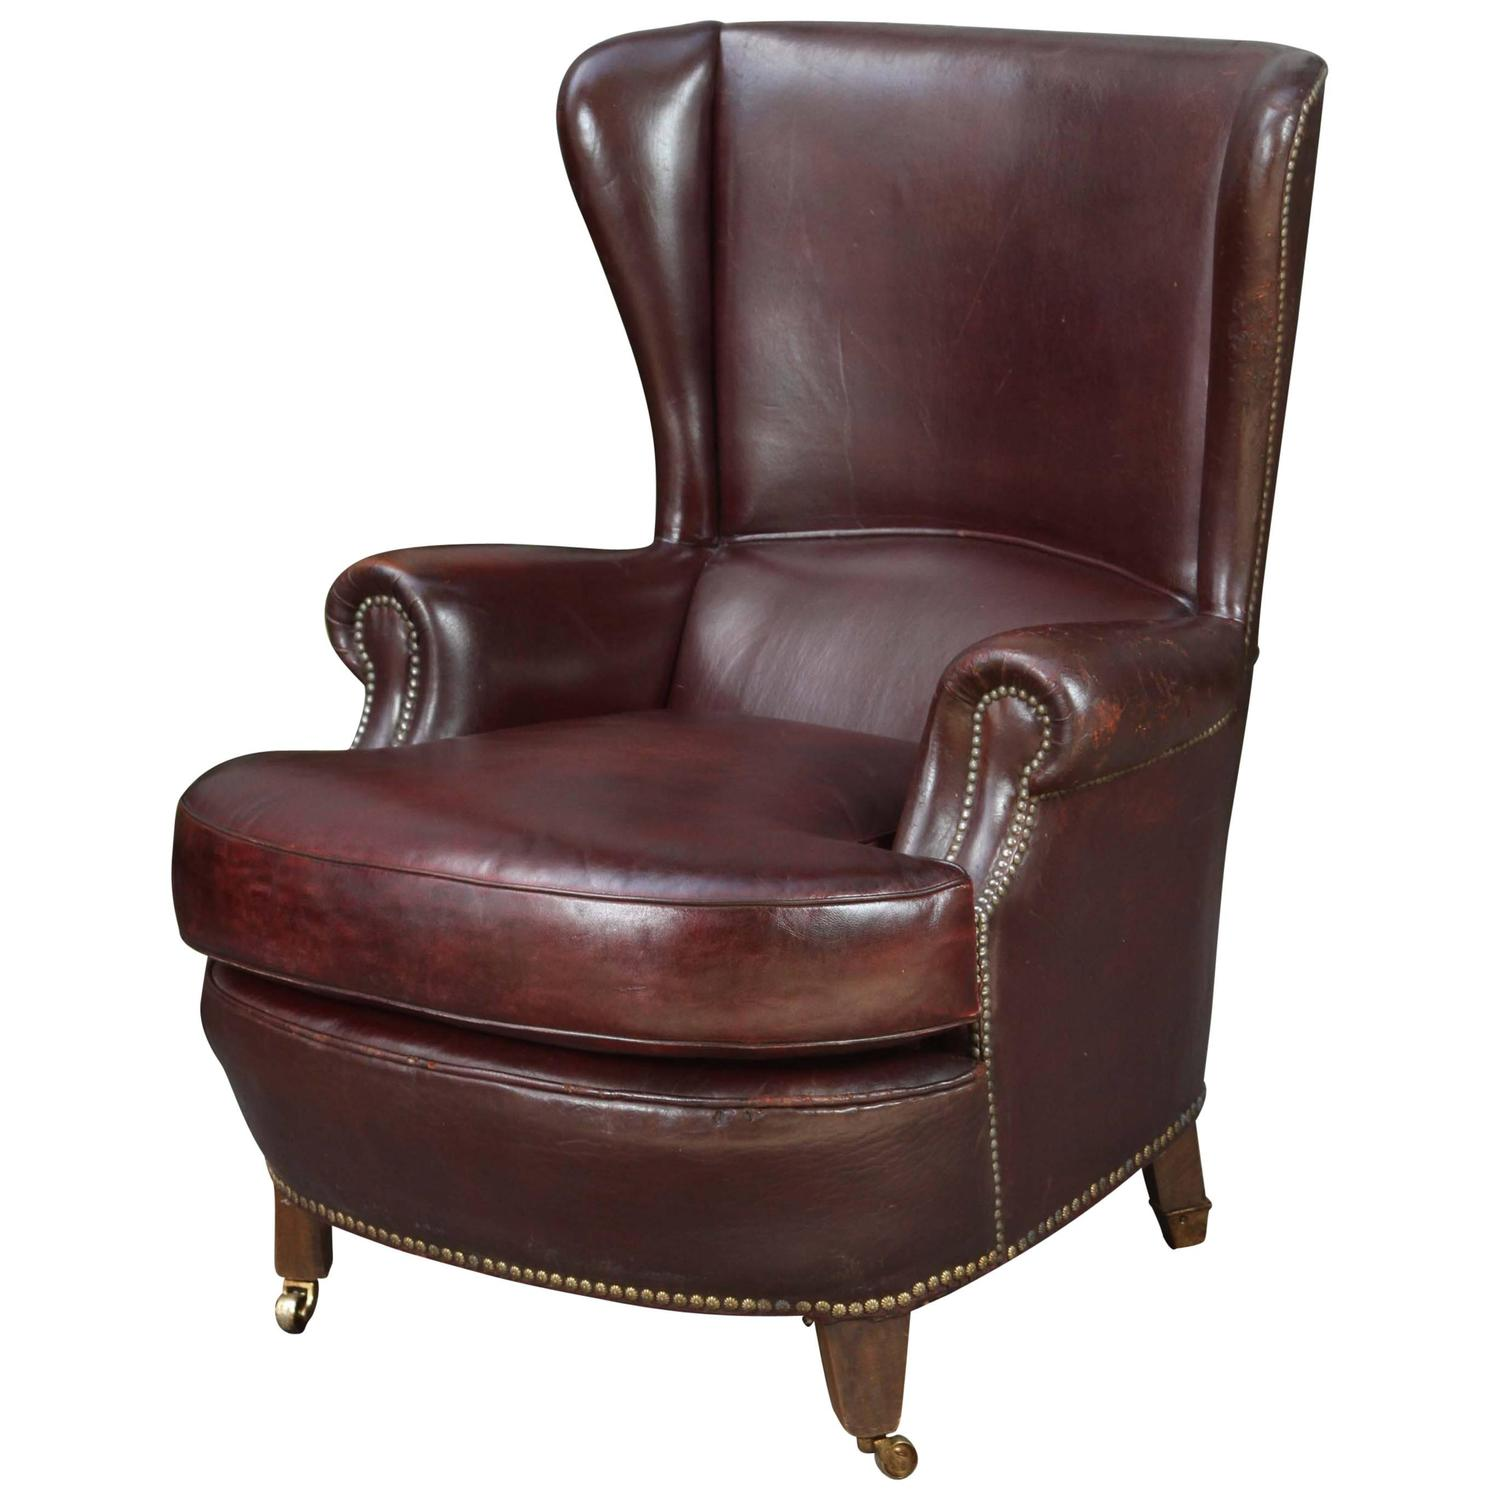 wingback chair for sale high back wooden chairs leather at 1stdibs